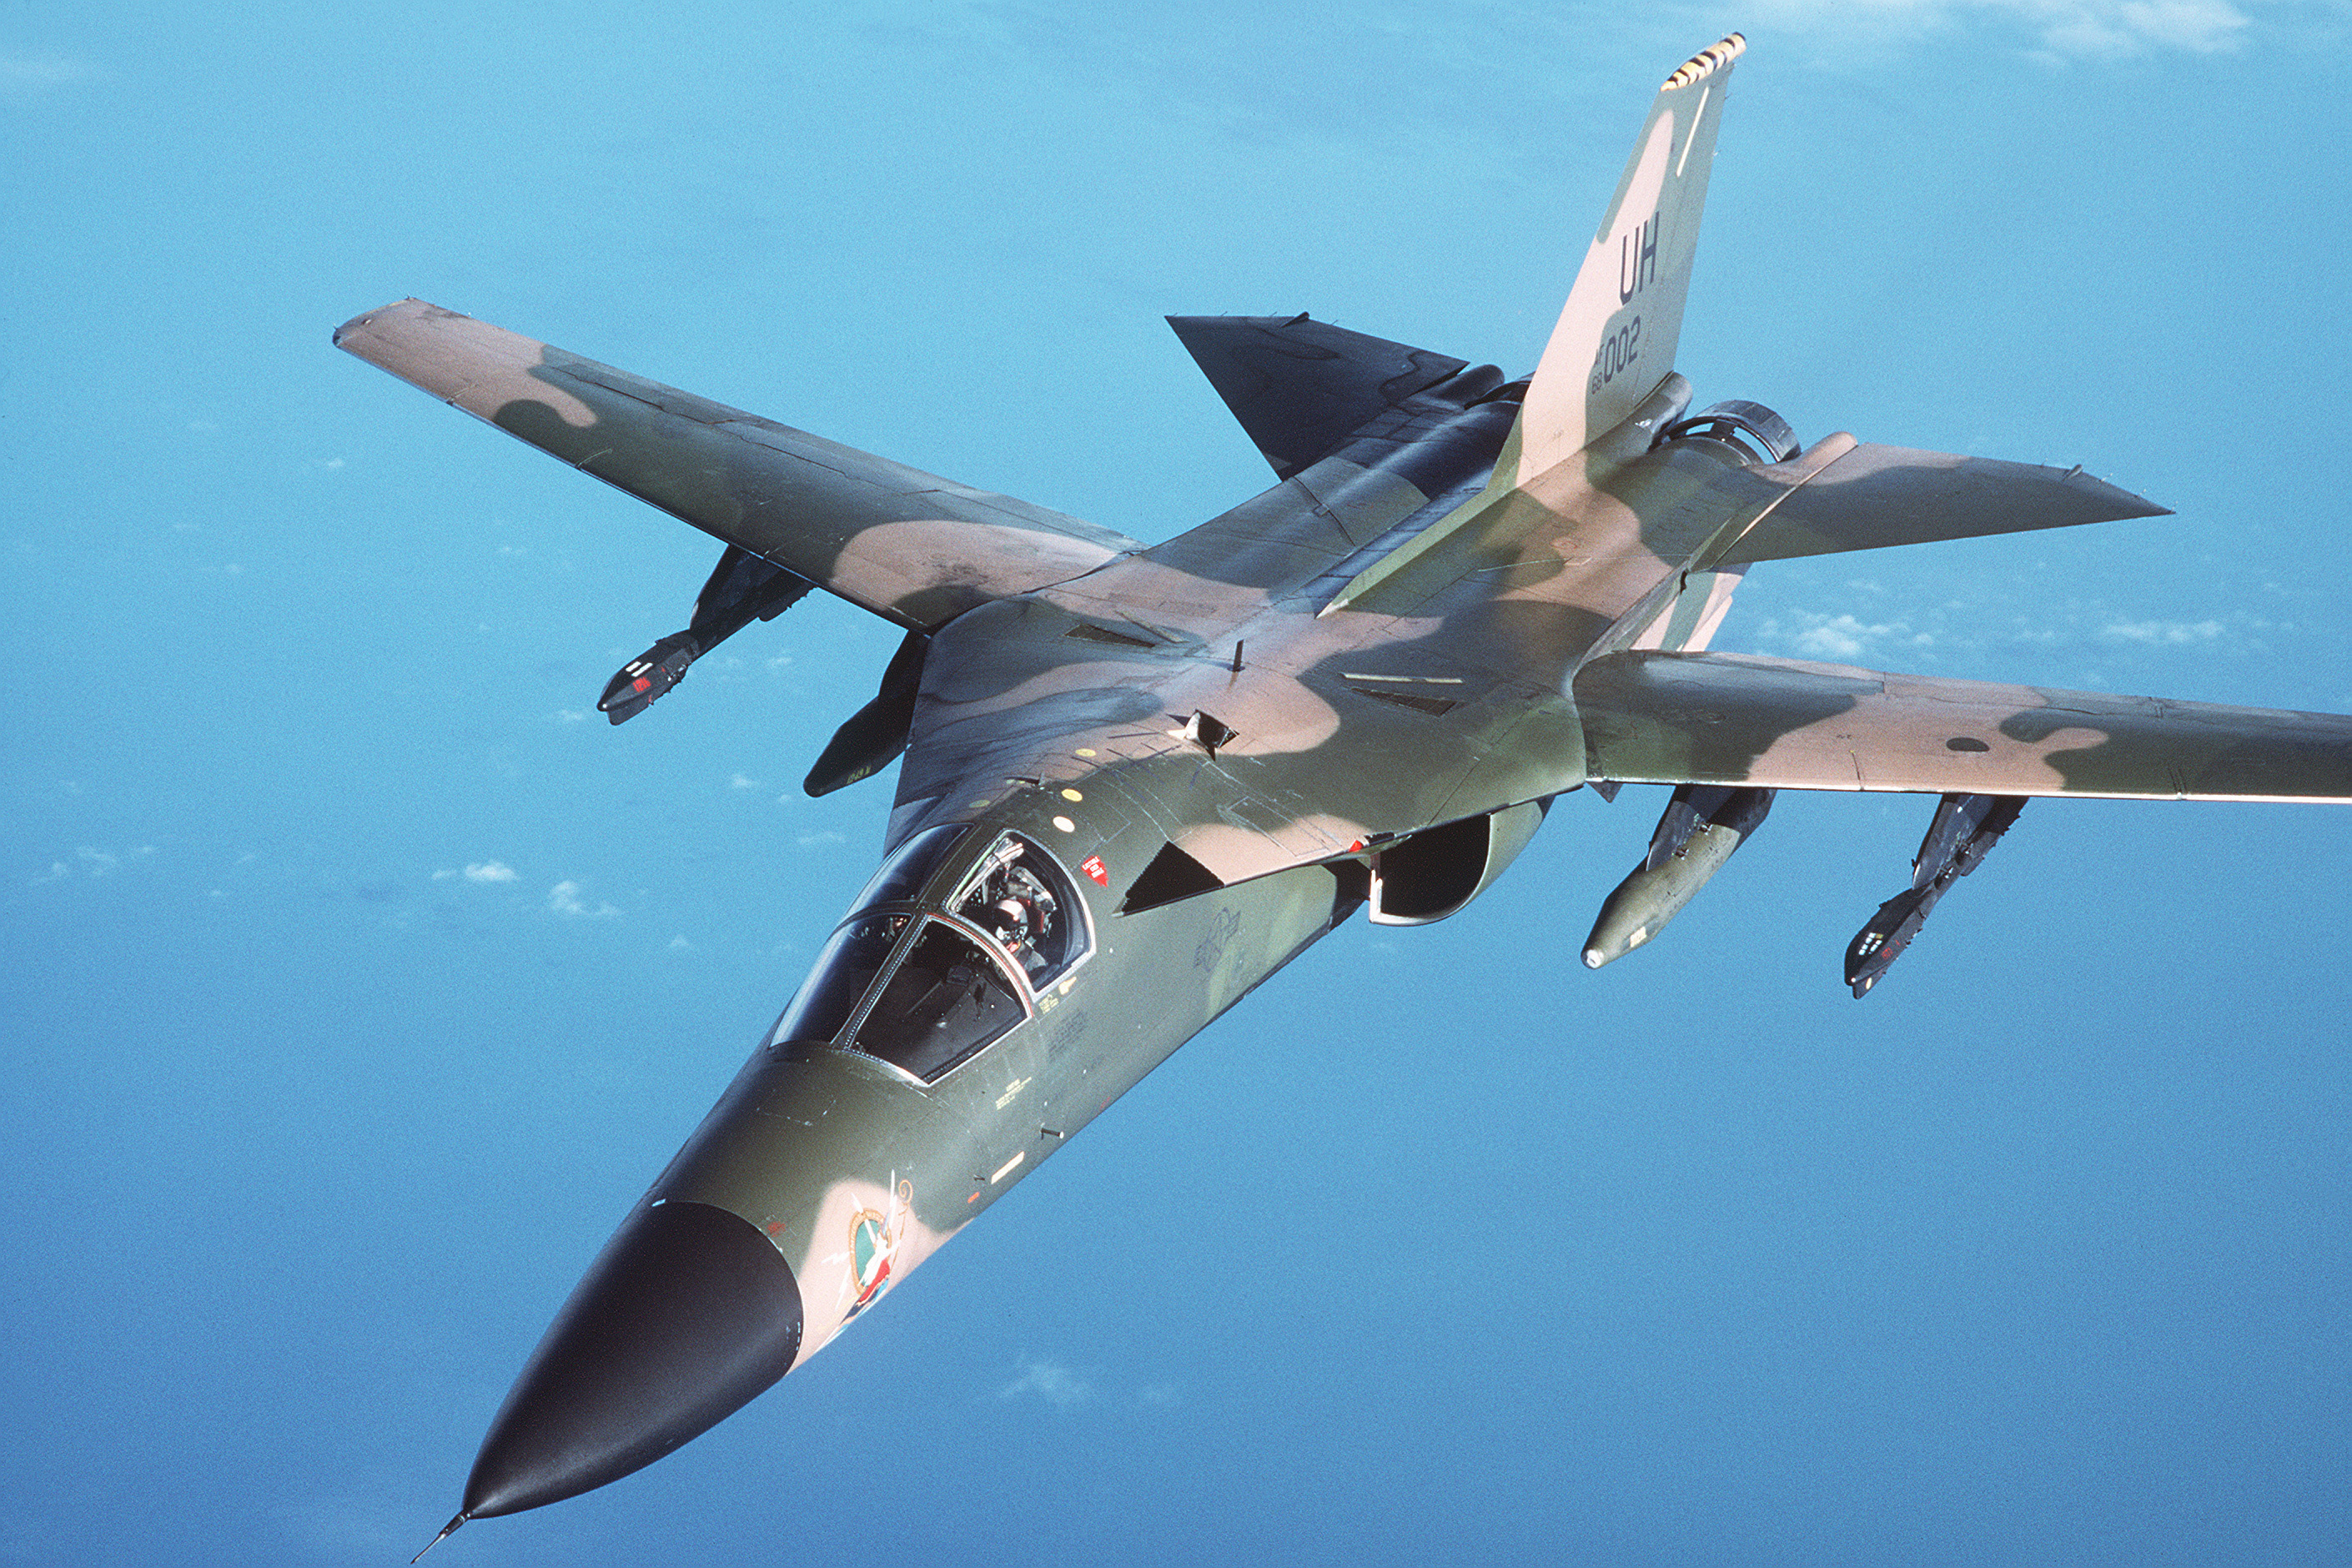 File:An air-to-air left front view of an F-111 aircraft ...